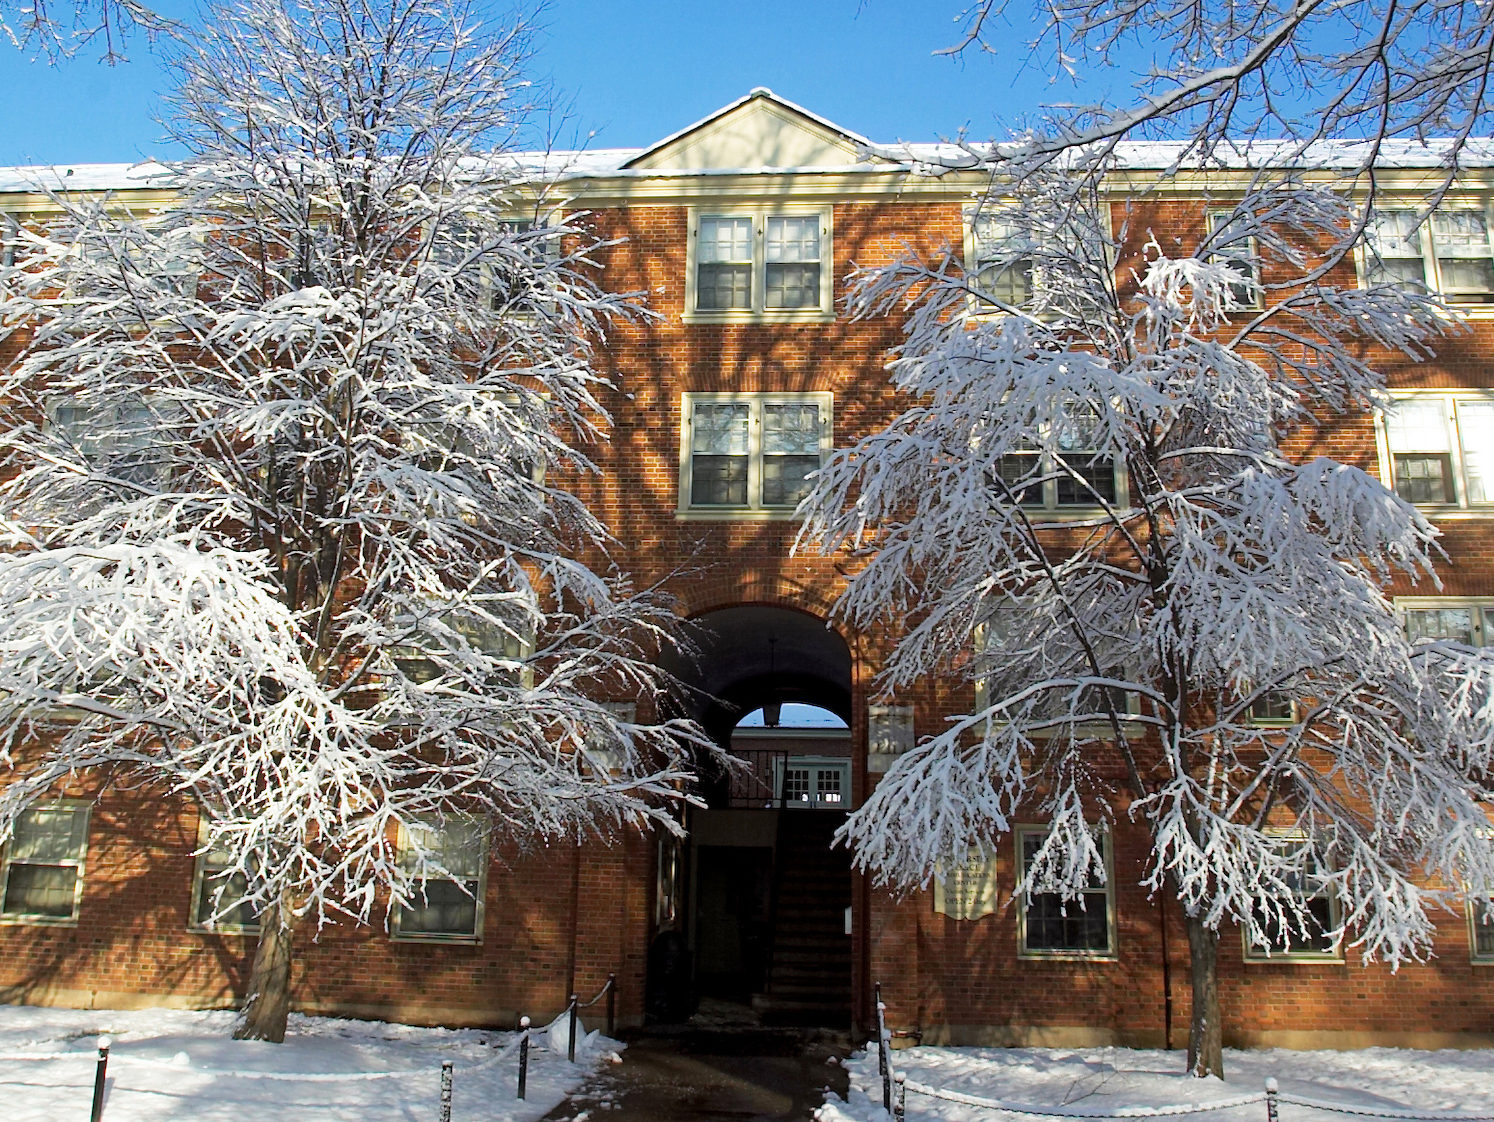 Exterior photo of Davis residence hall after a snow storm